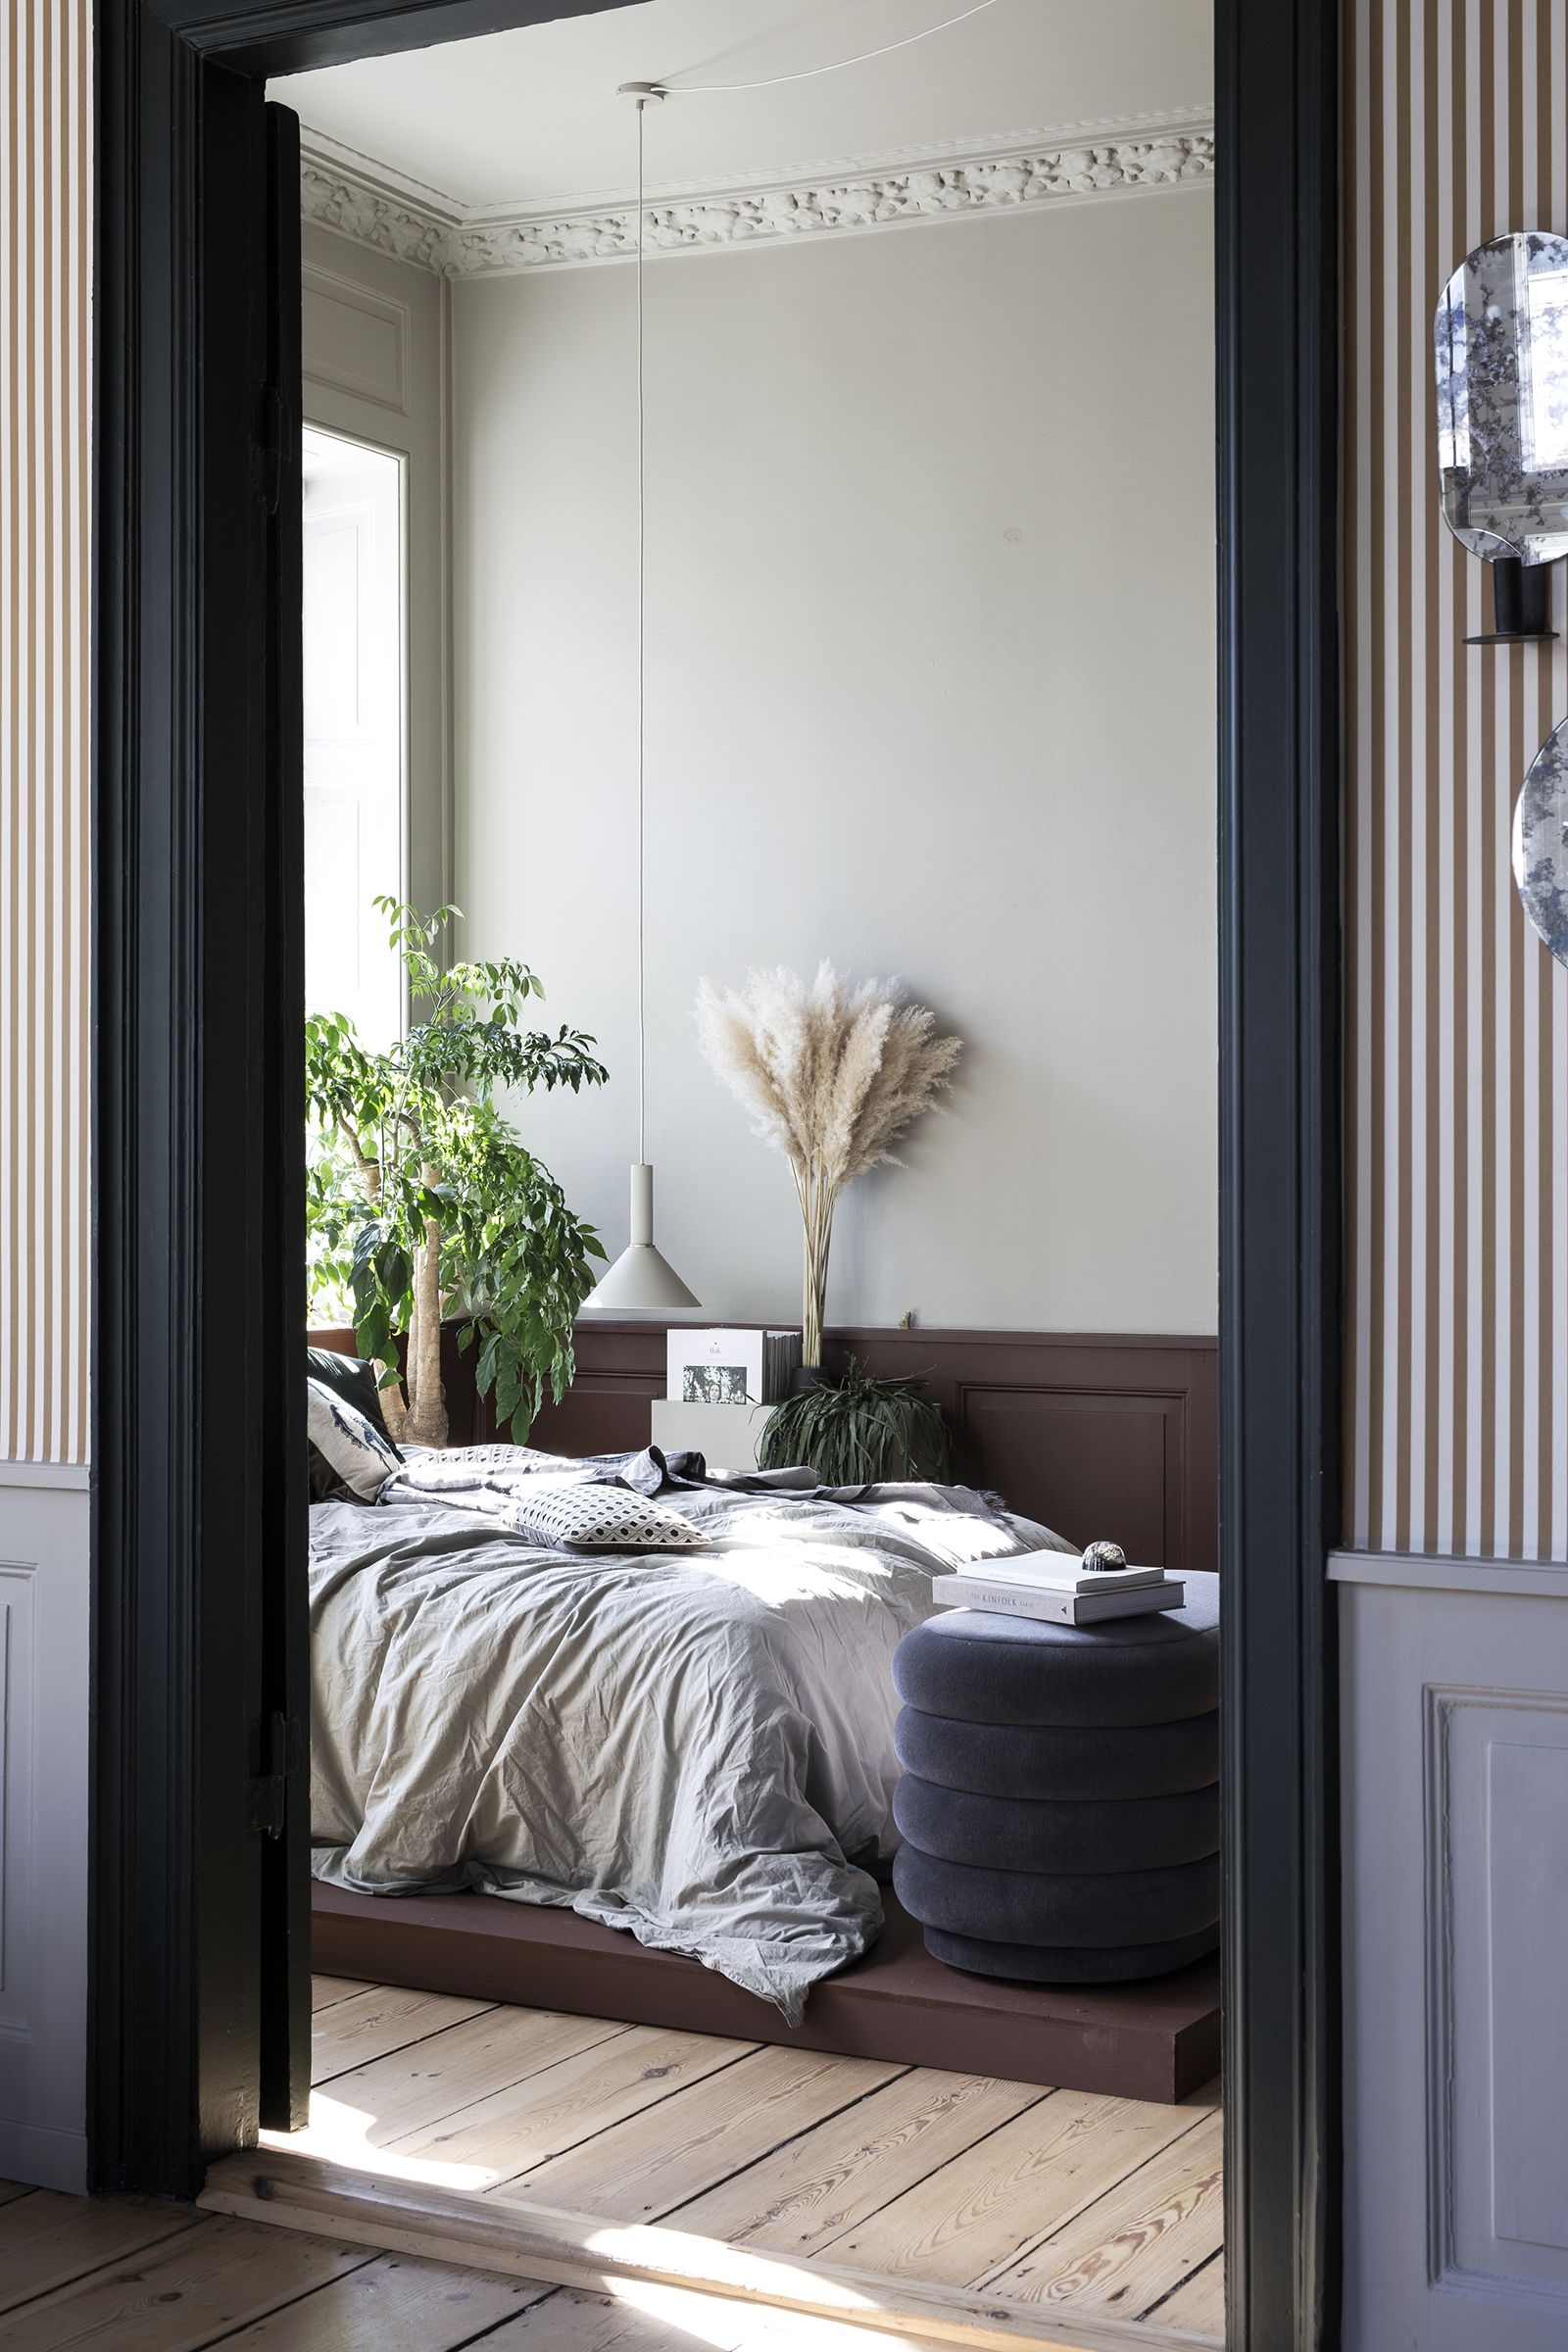 Danish Ferm Living Opened The Doors To The Home For